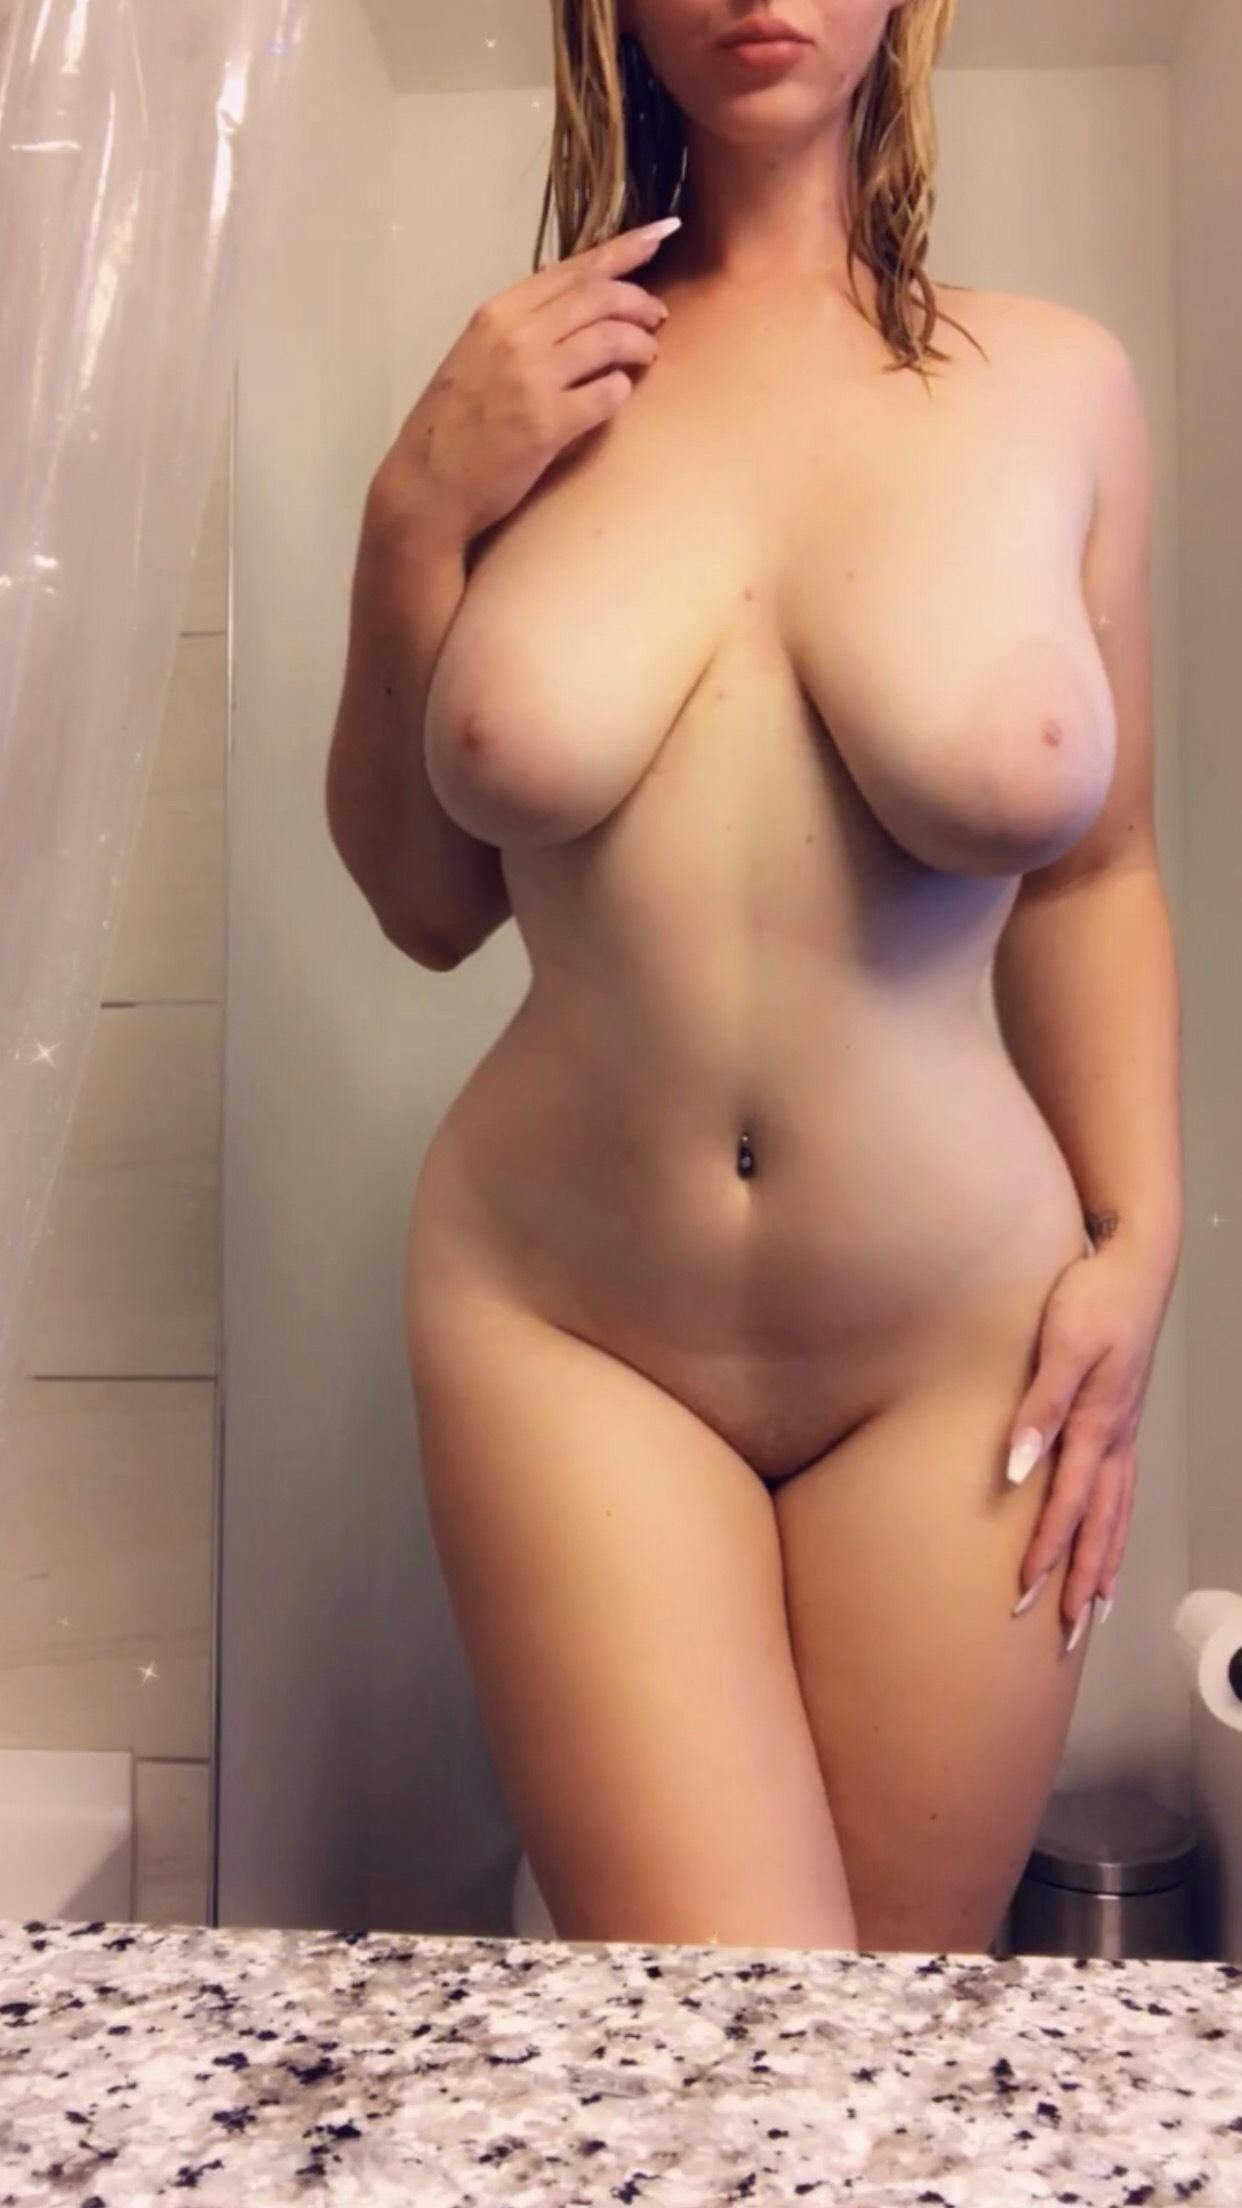 Photo in topic Busty Petite Girls by Rsssca68